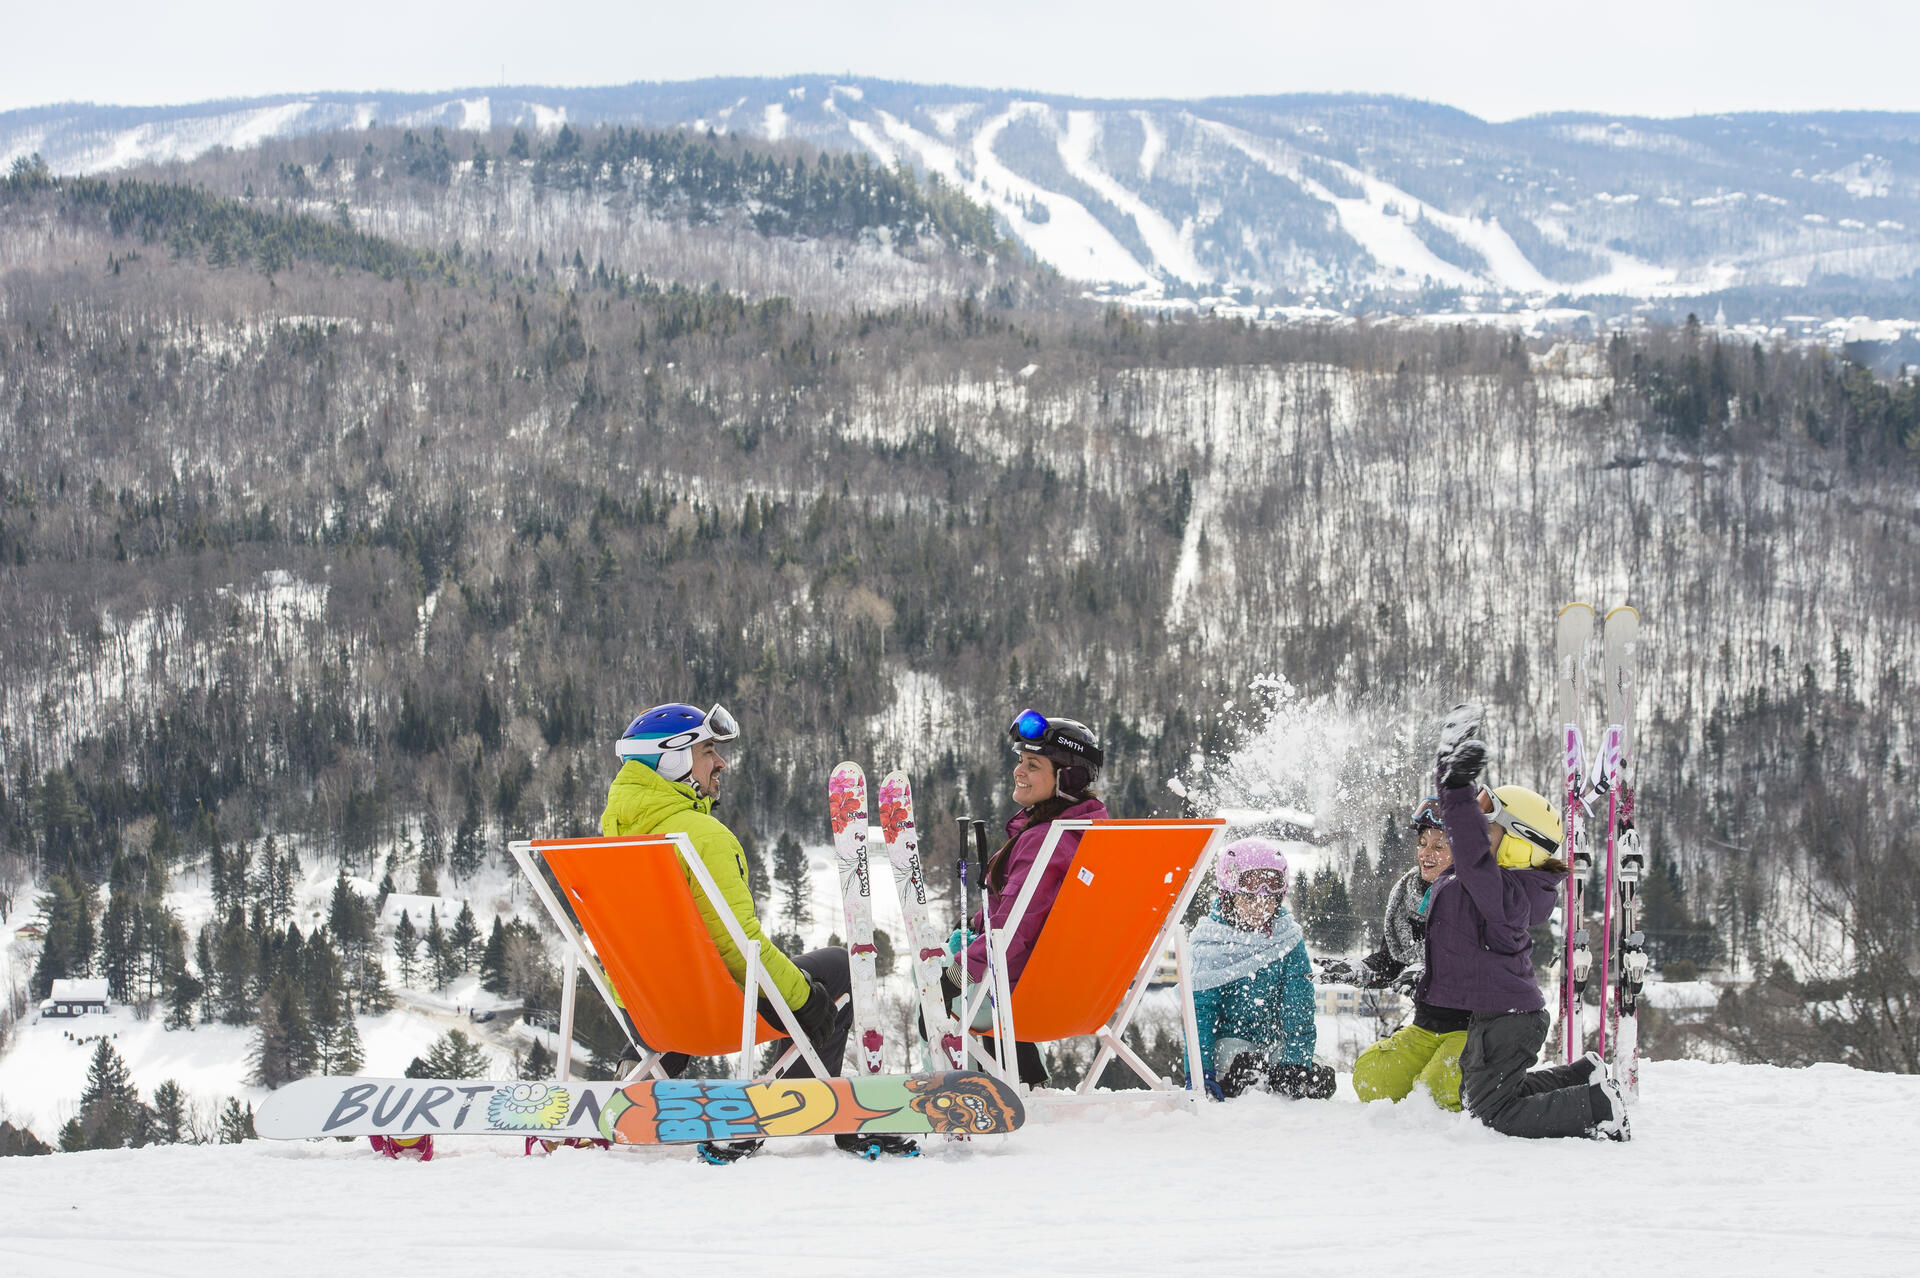 Family relaxing in chairs on snowy mountain